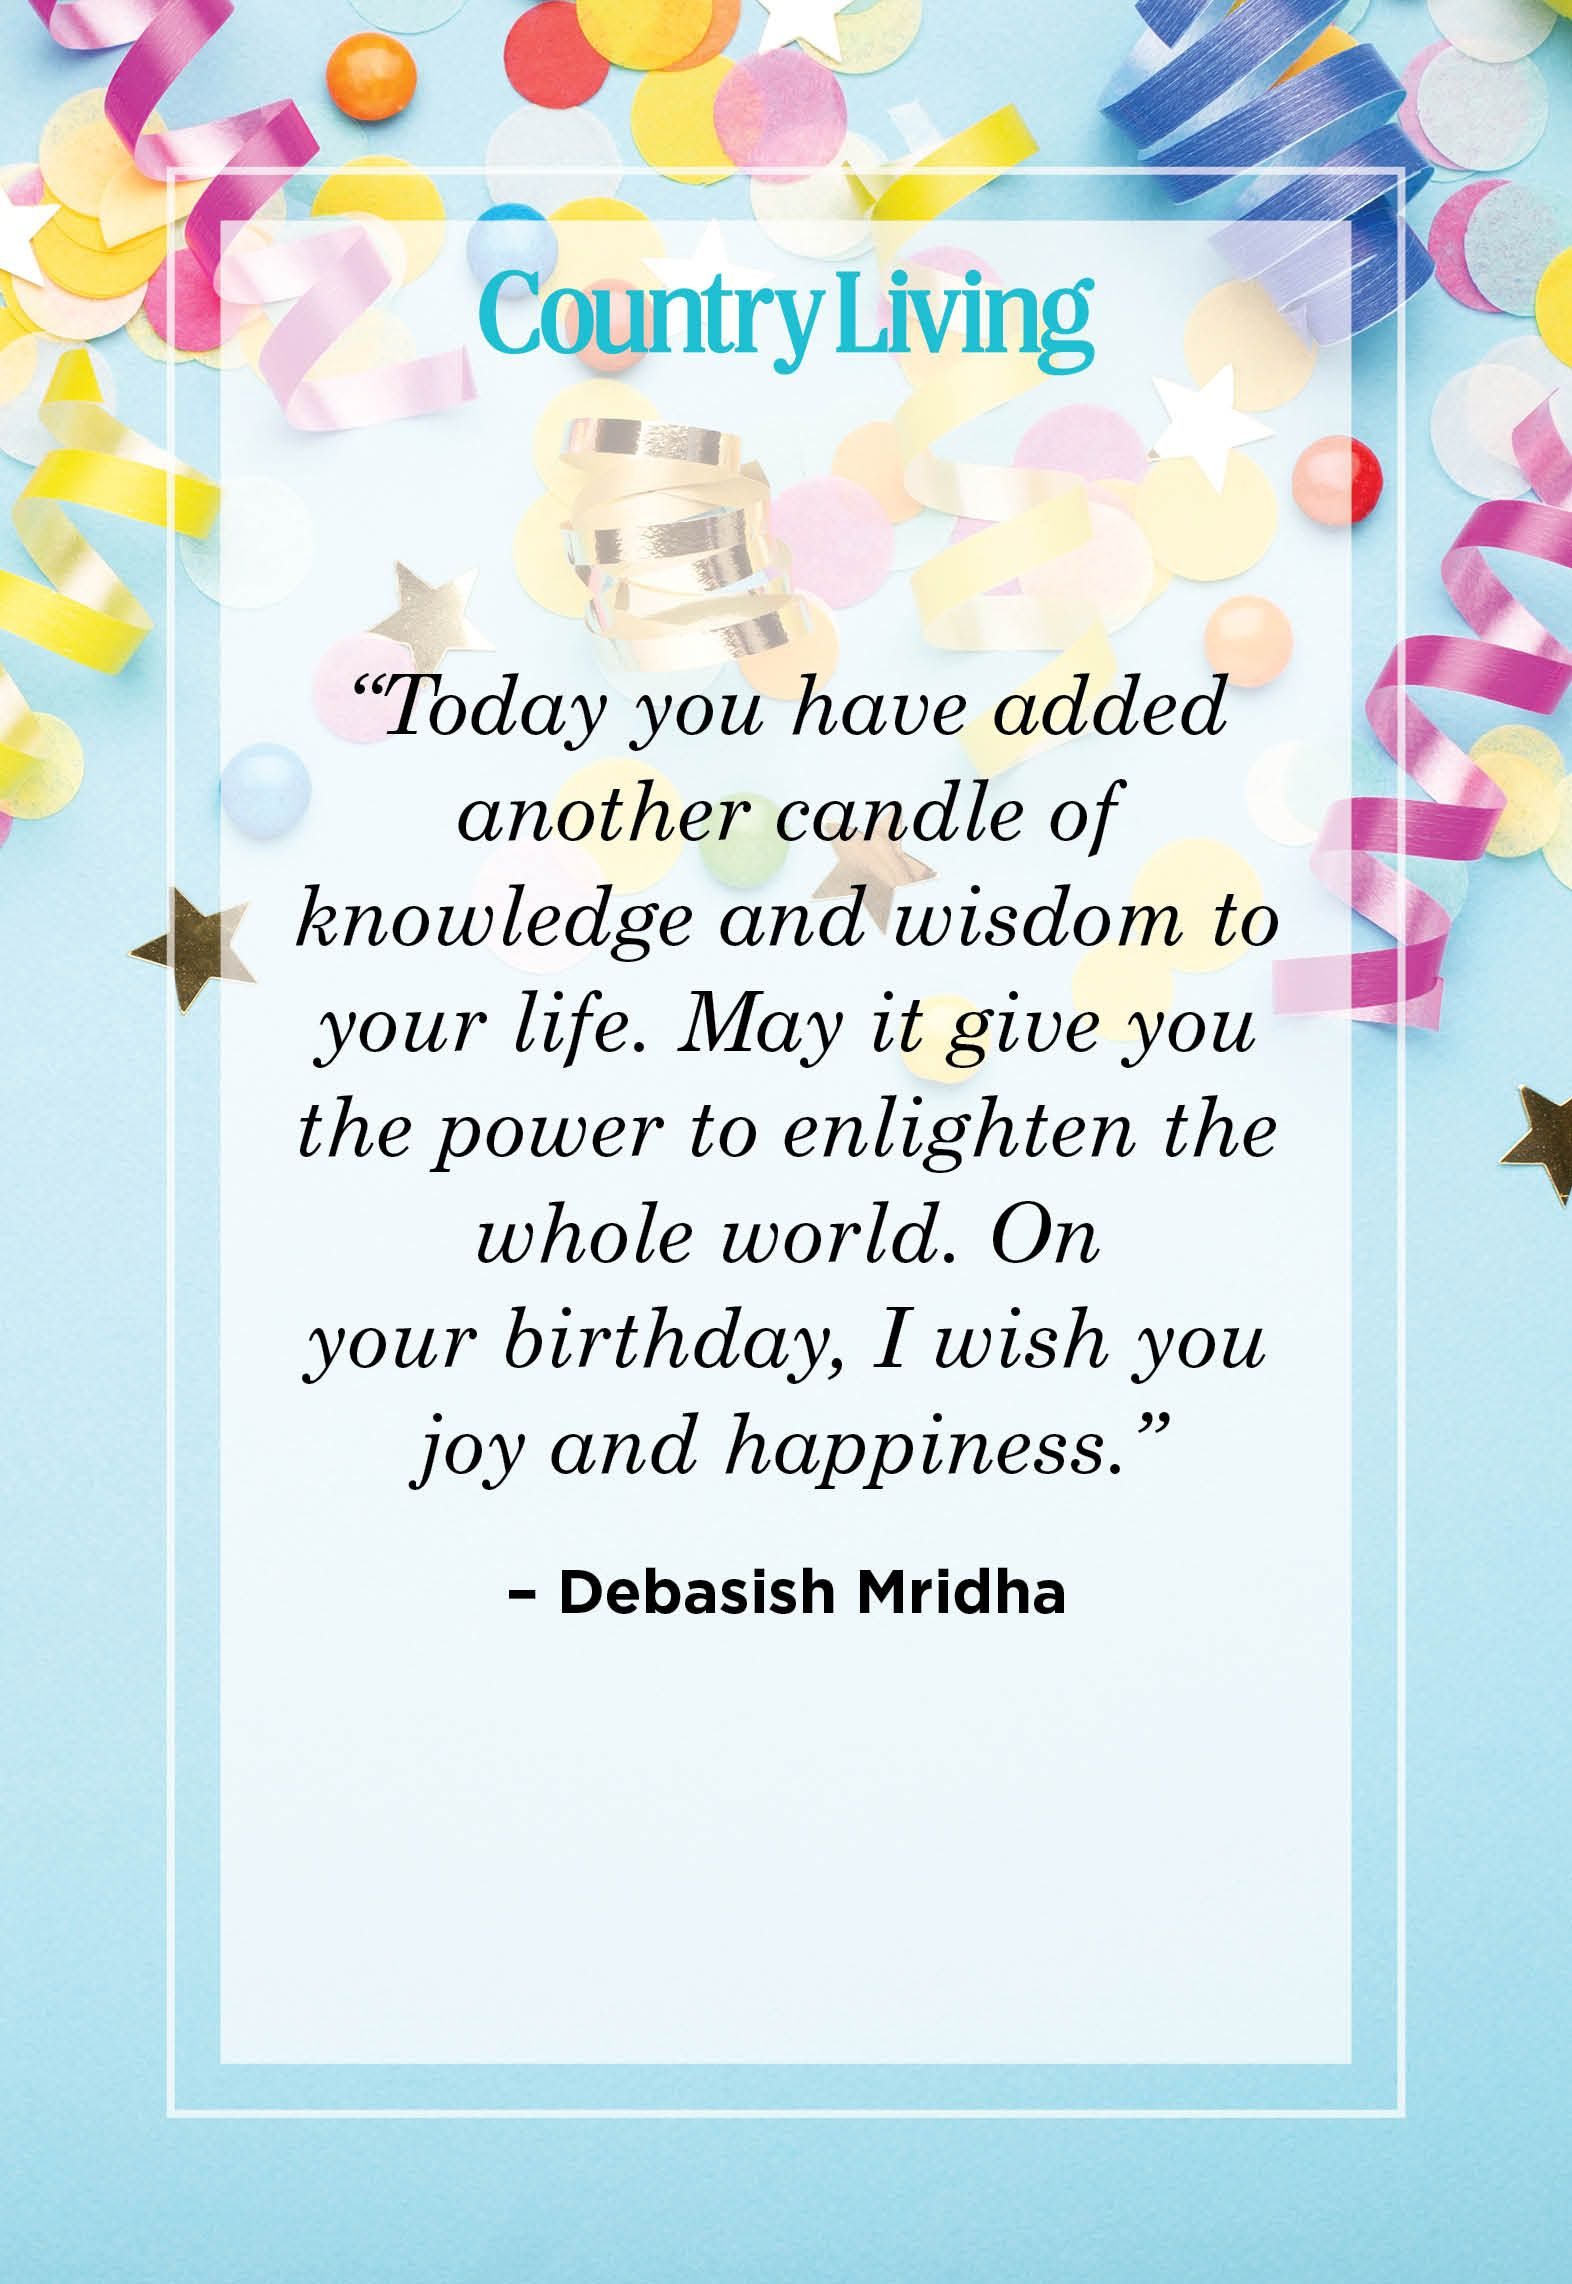 15 Romantic Birthday Quotes for Girlfriend - Emotional Love Quotes